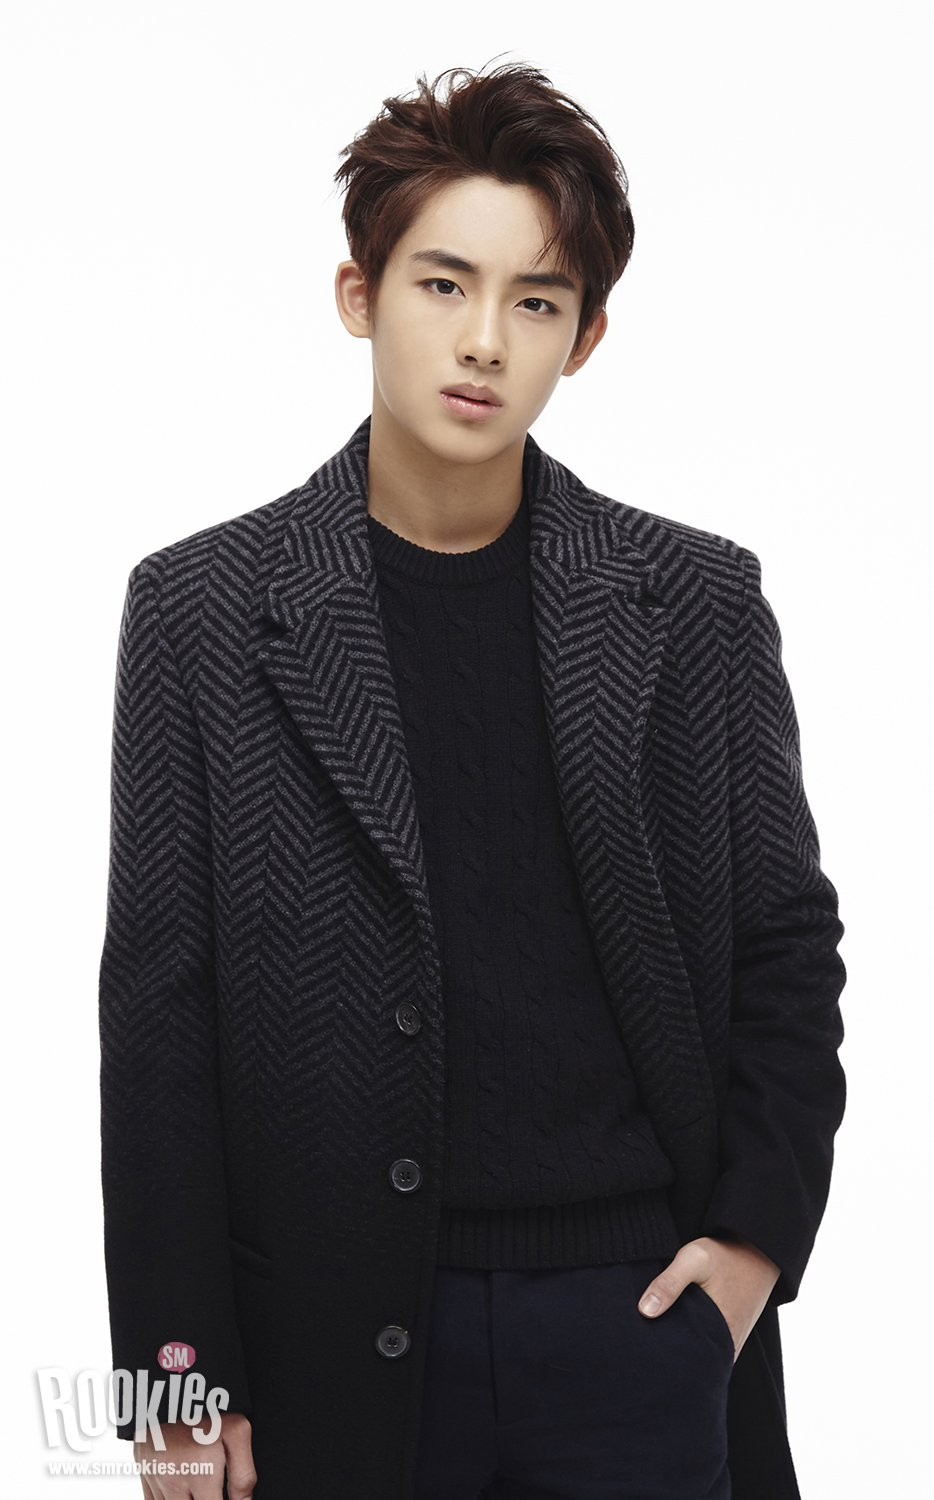 smrookies-winwin-member-profile-and-facts